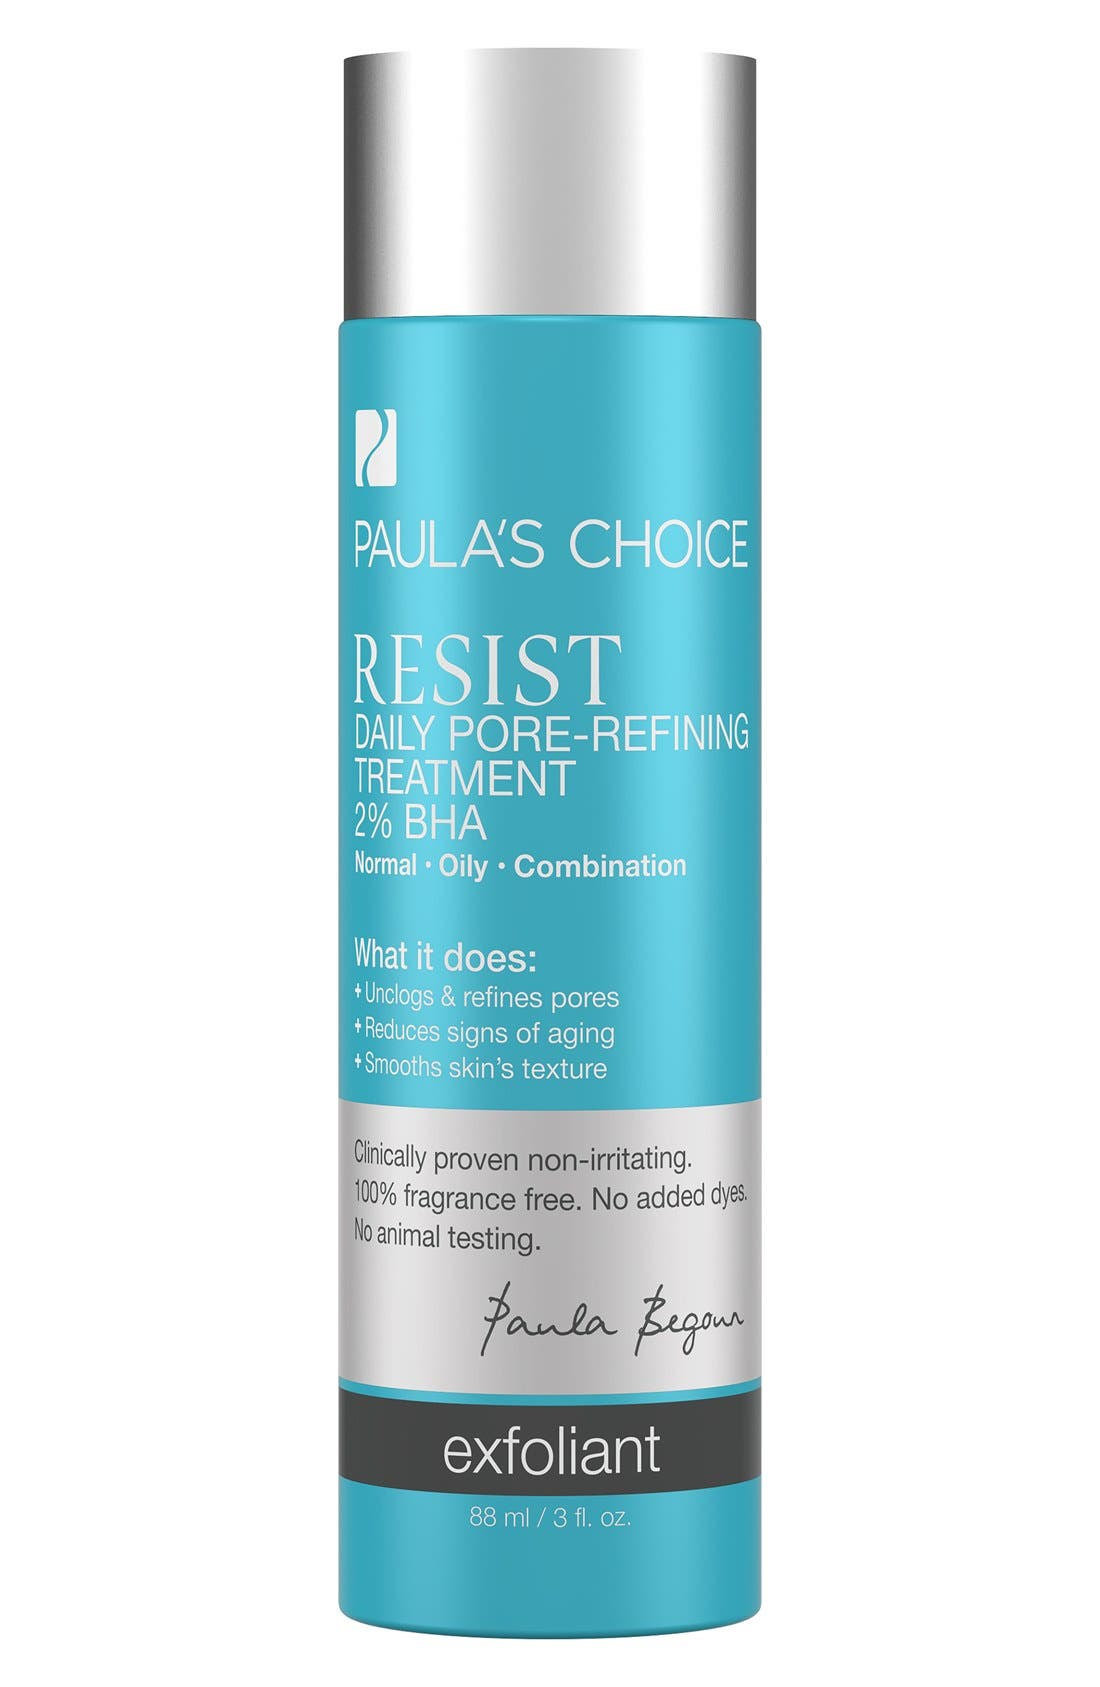 Paula's Choice Resist Daily Pore-Refining Treatment